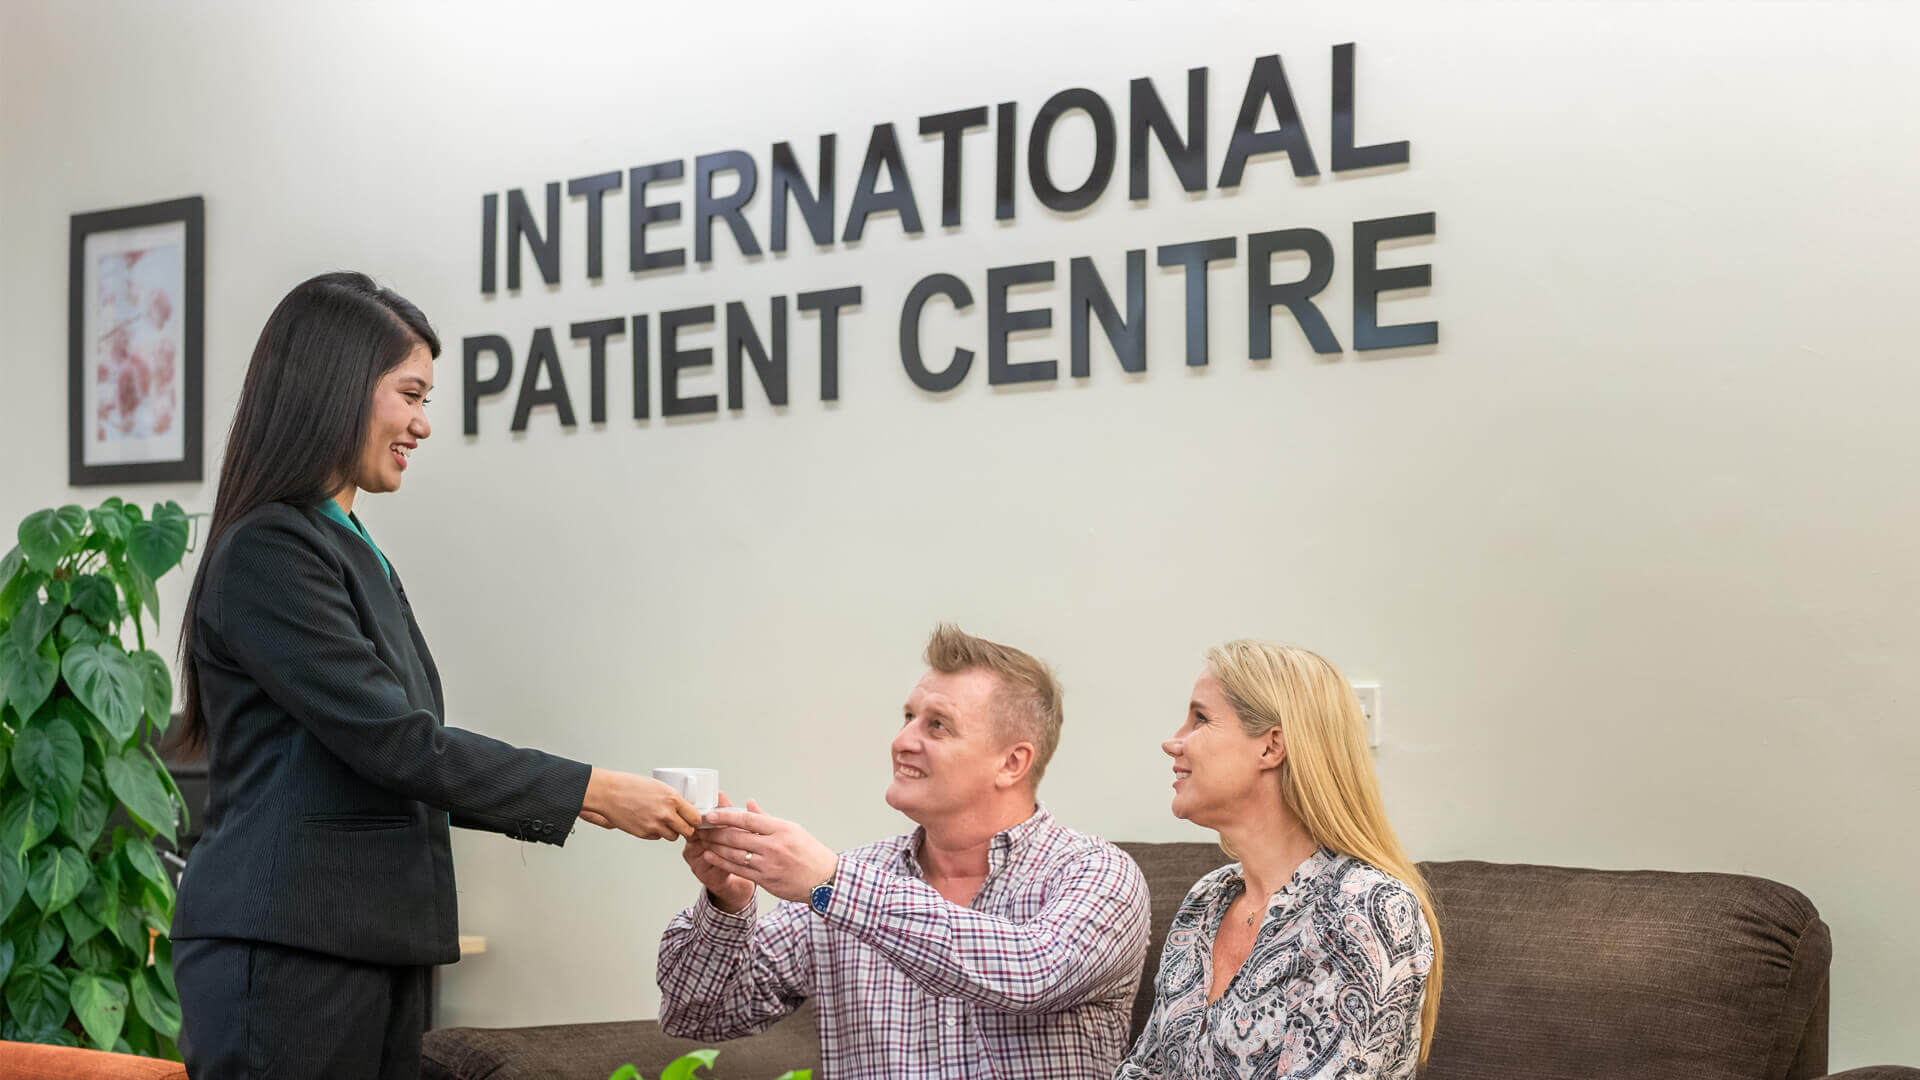 Services and Facilities International Patient Centre